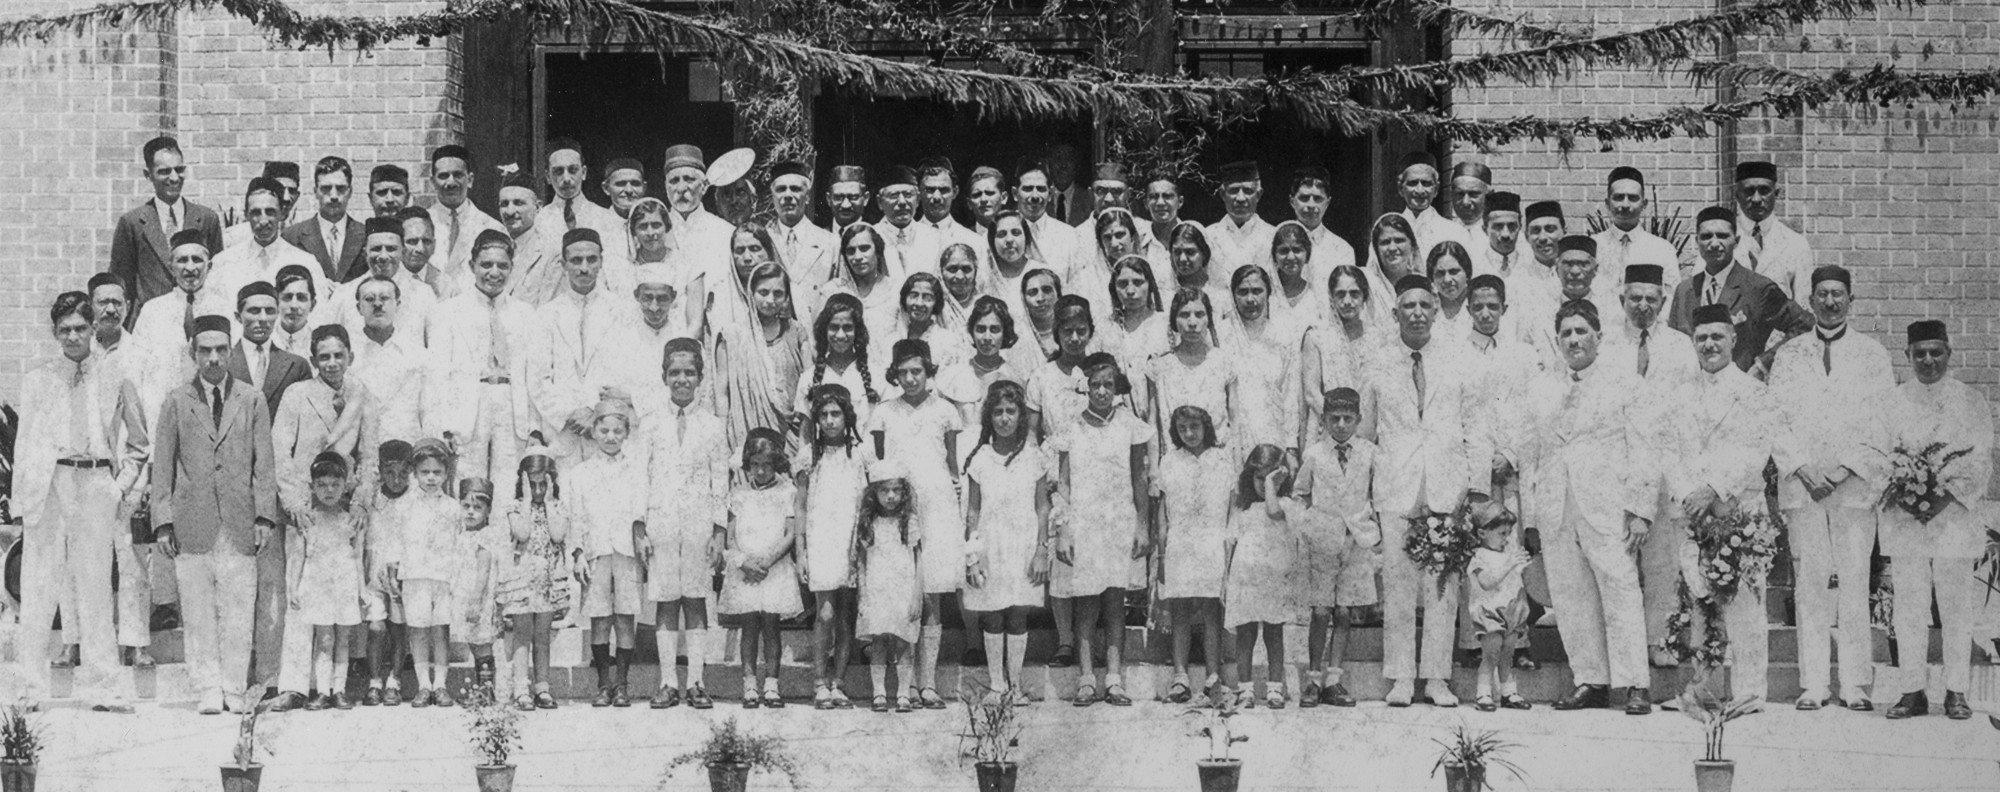 Members of Shanghai's Parsi community, circa 1900.